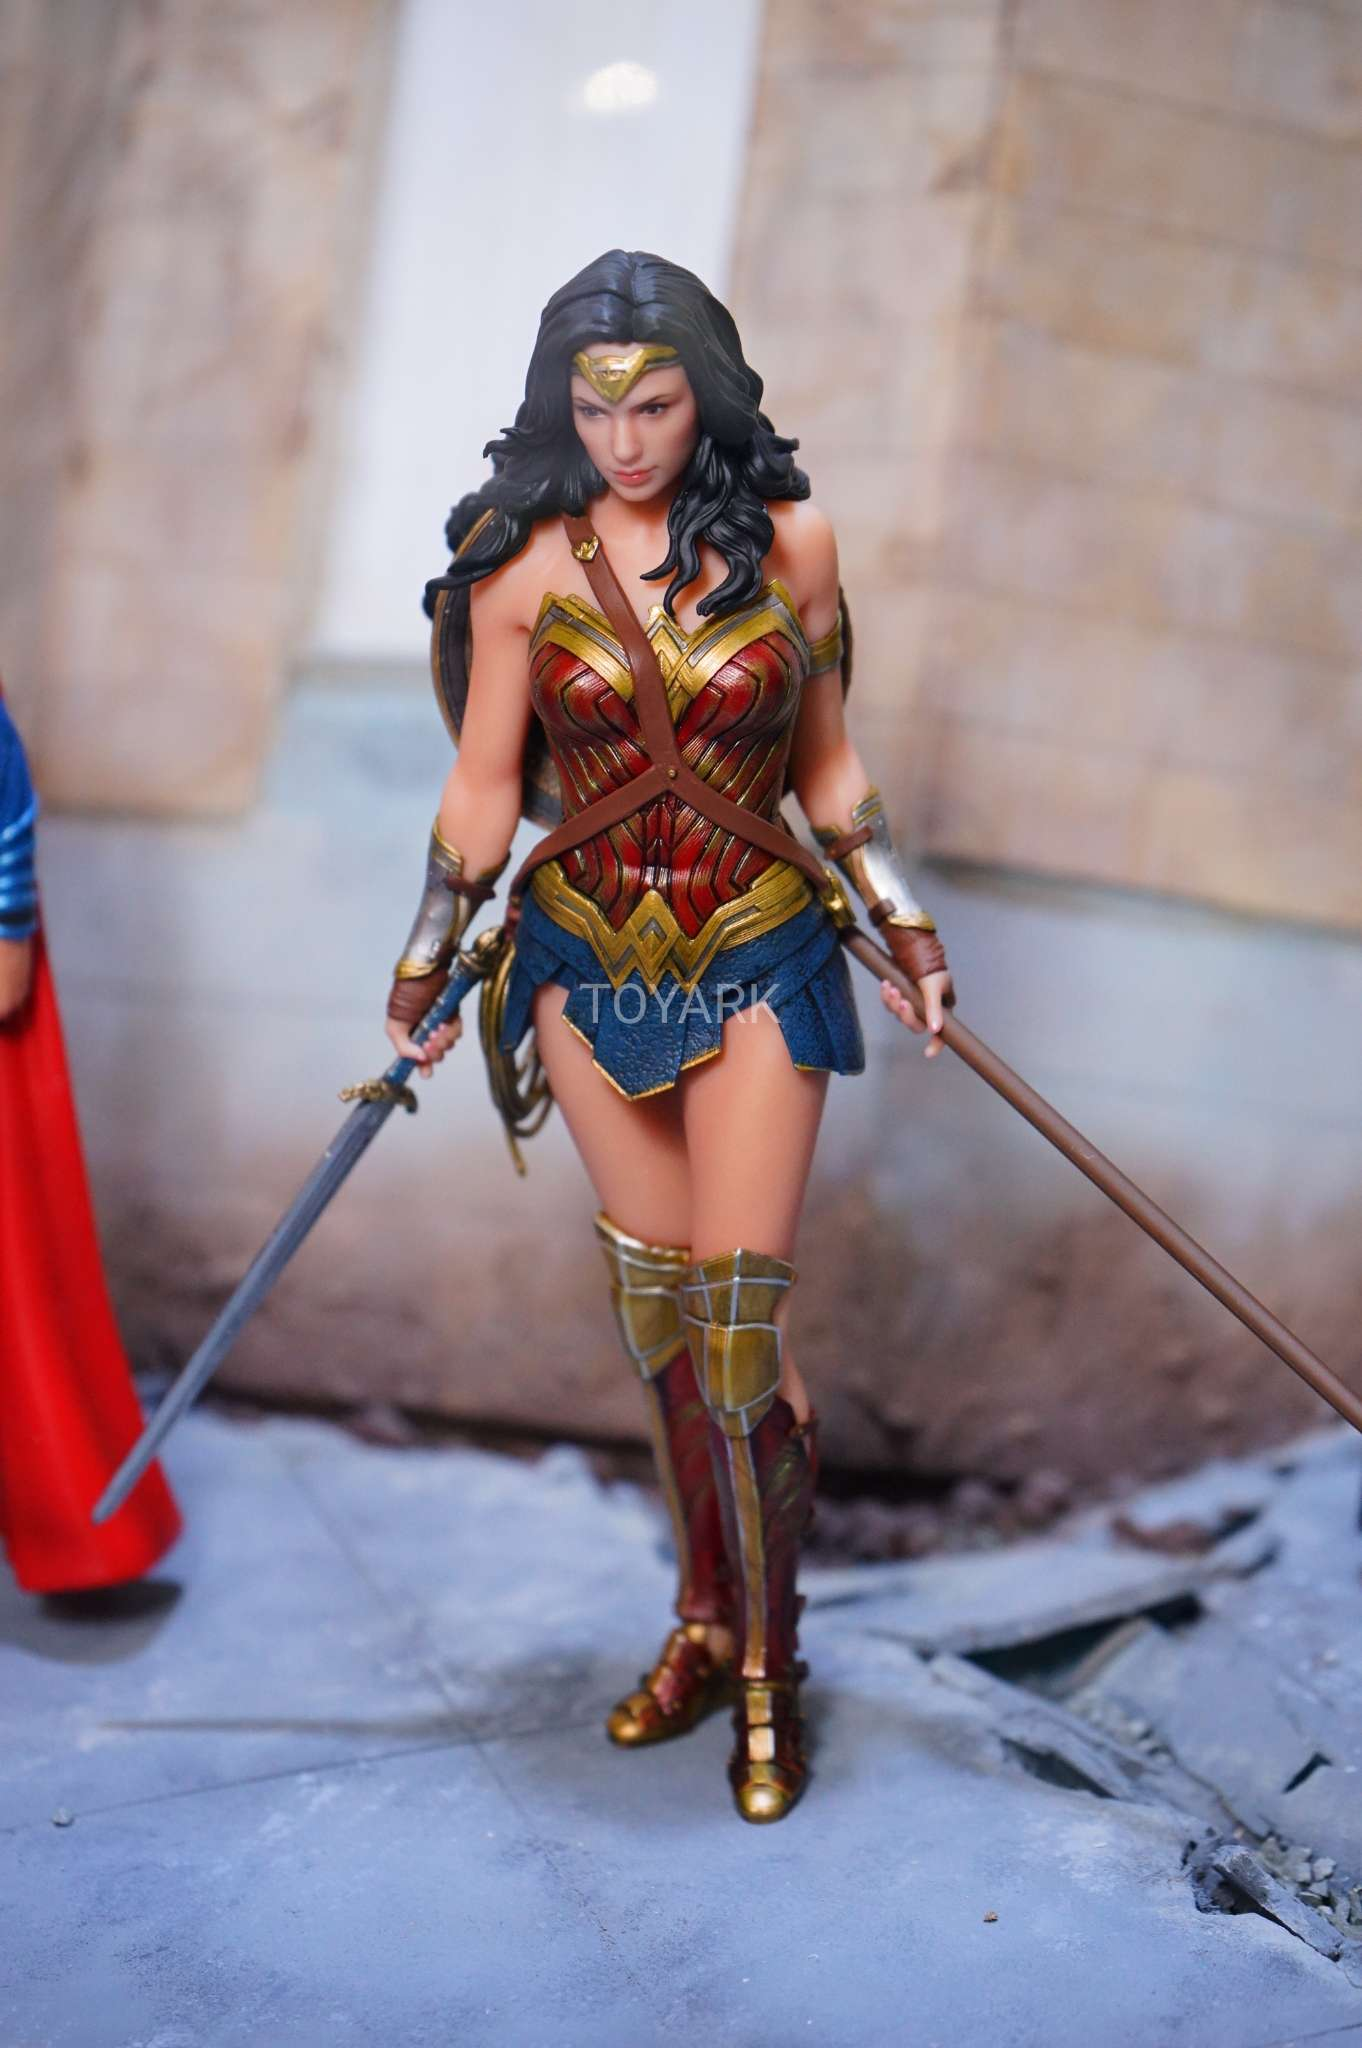 Spada Wonder Woman Dc Justice League Live Action Movie Statues Statue Forum